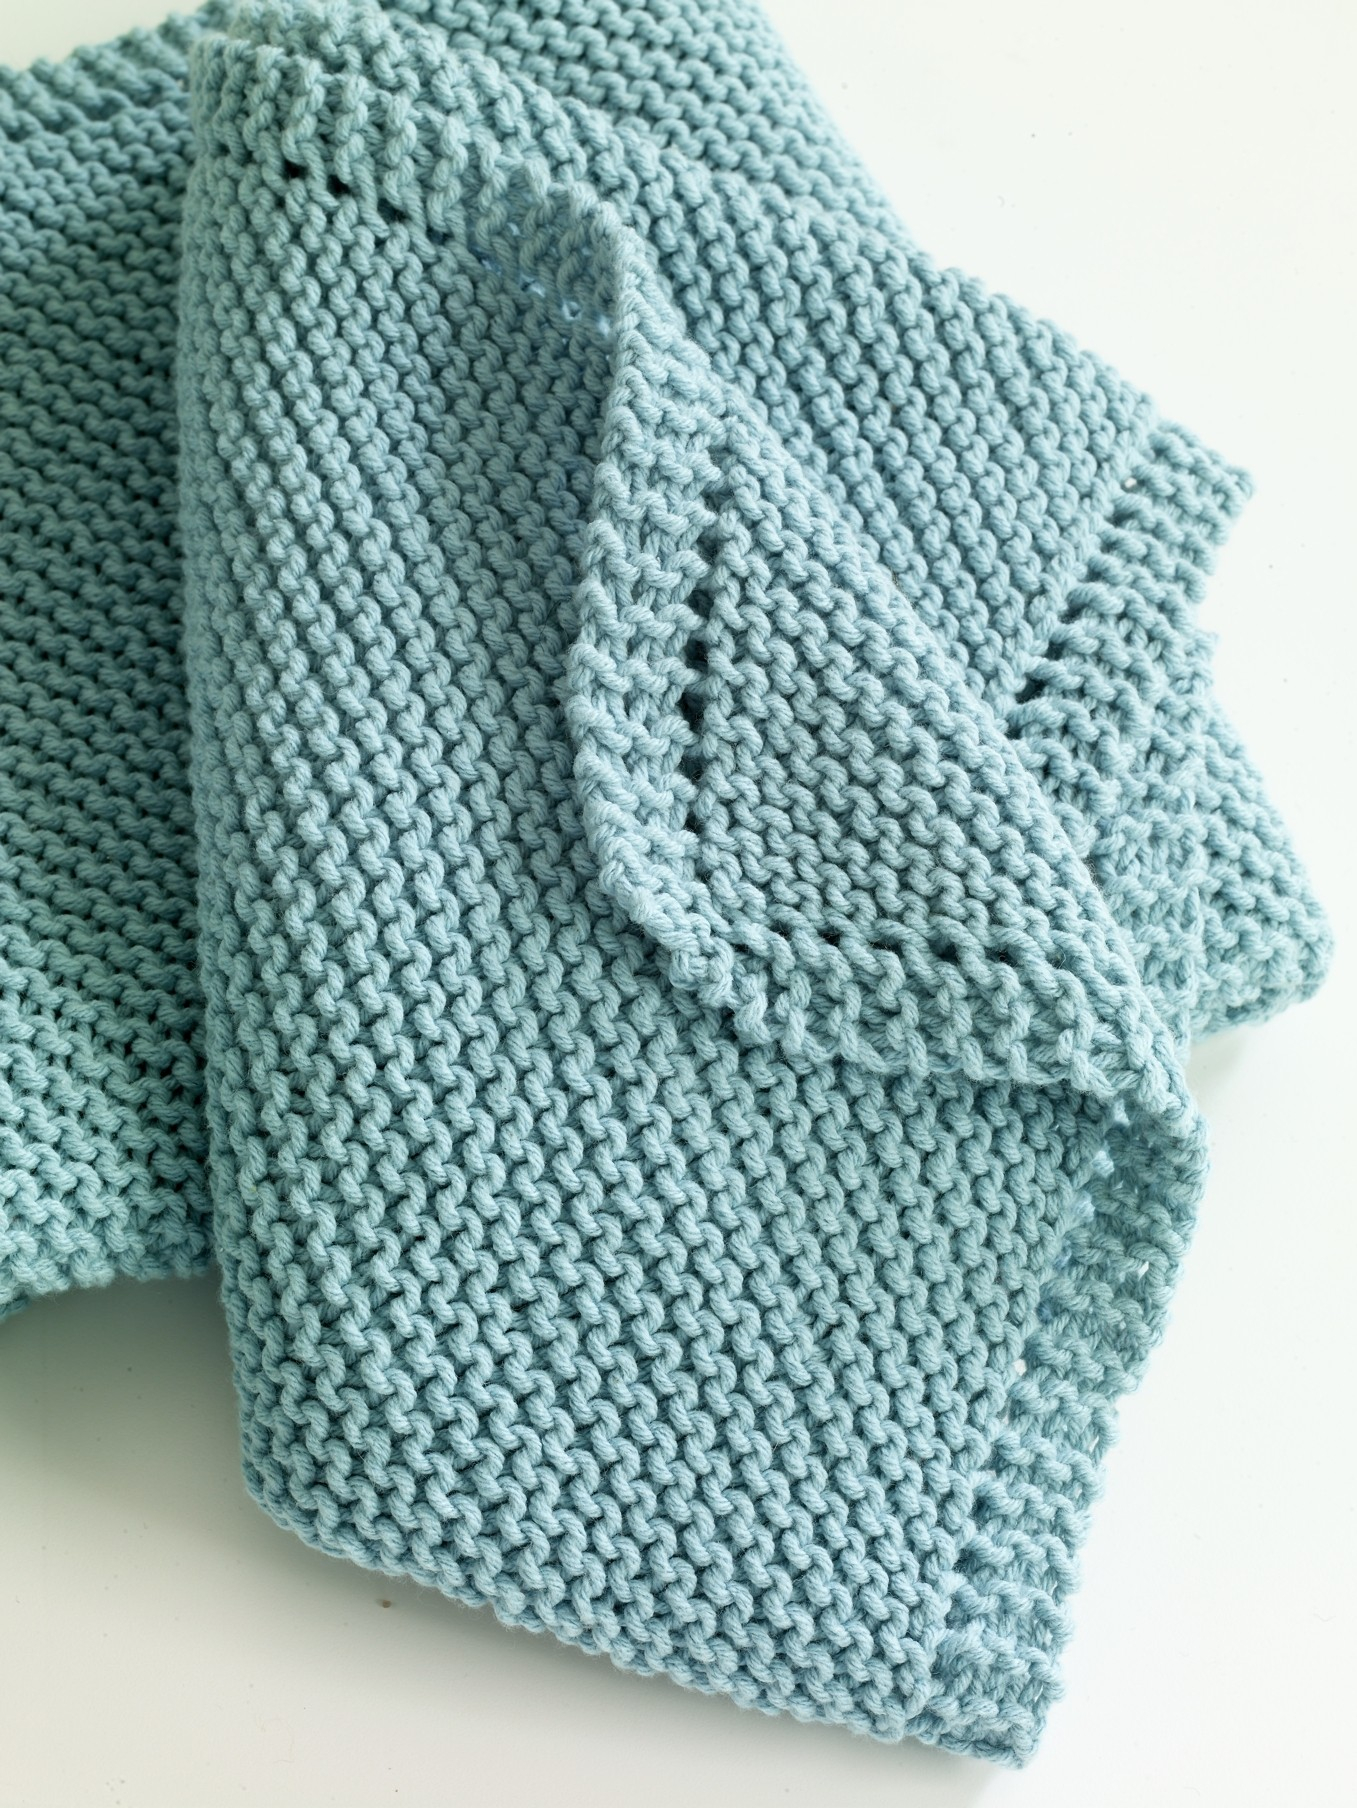 Free Knitting Patterns For Baby Blankets Blankets Threadsnstitches